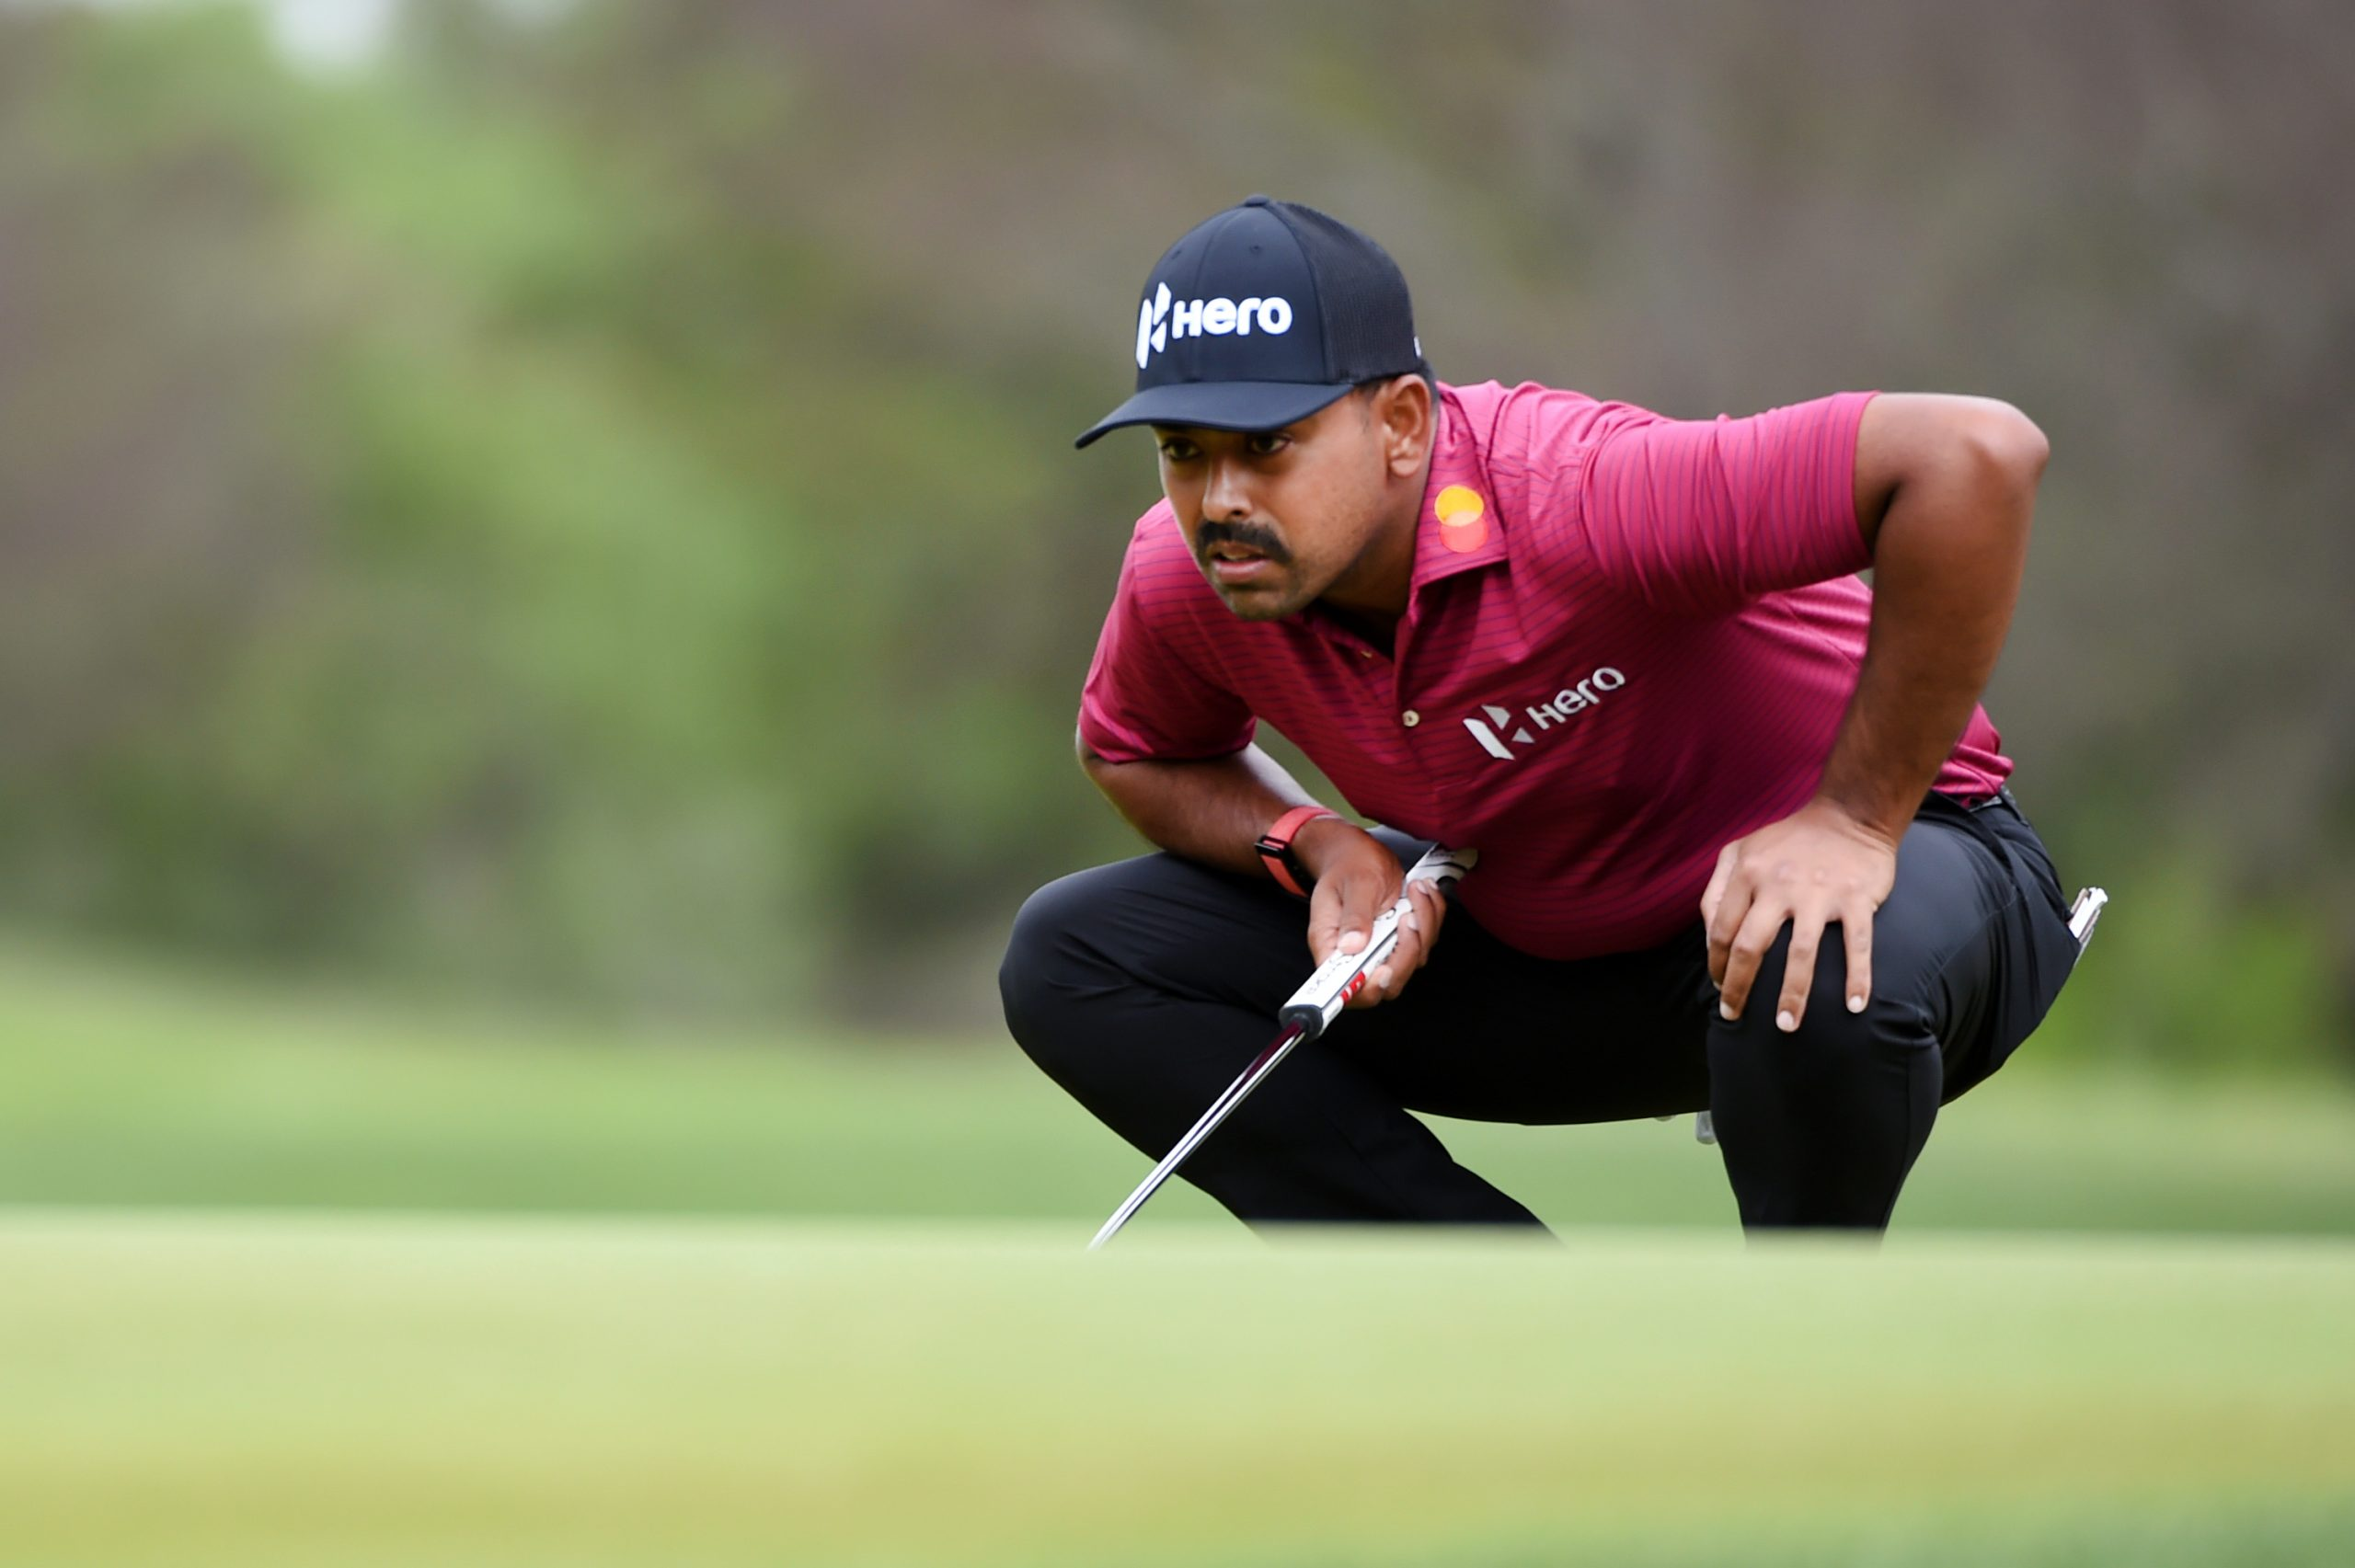 Lahiri rises to fifth for a shot at maiden PGA Tour win in Texas